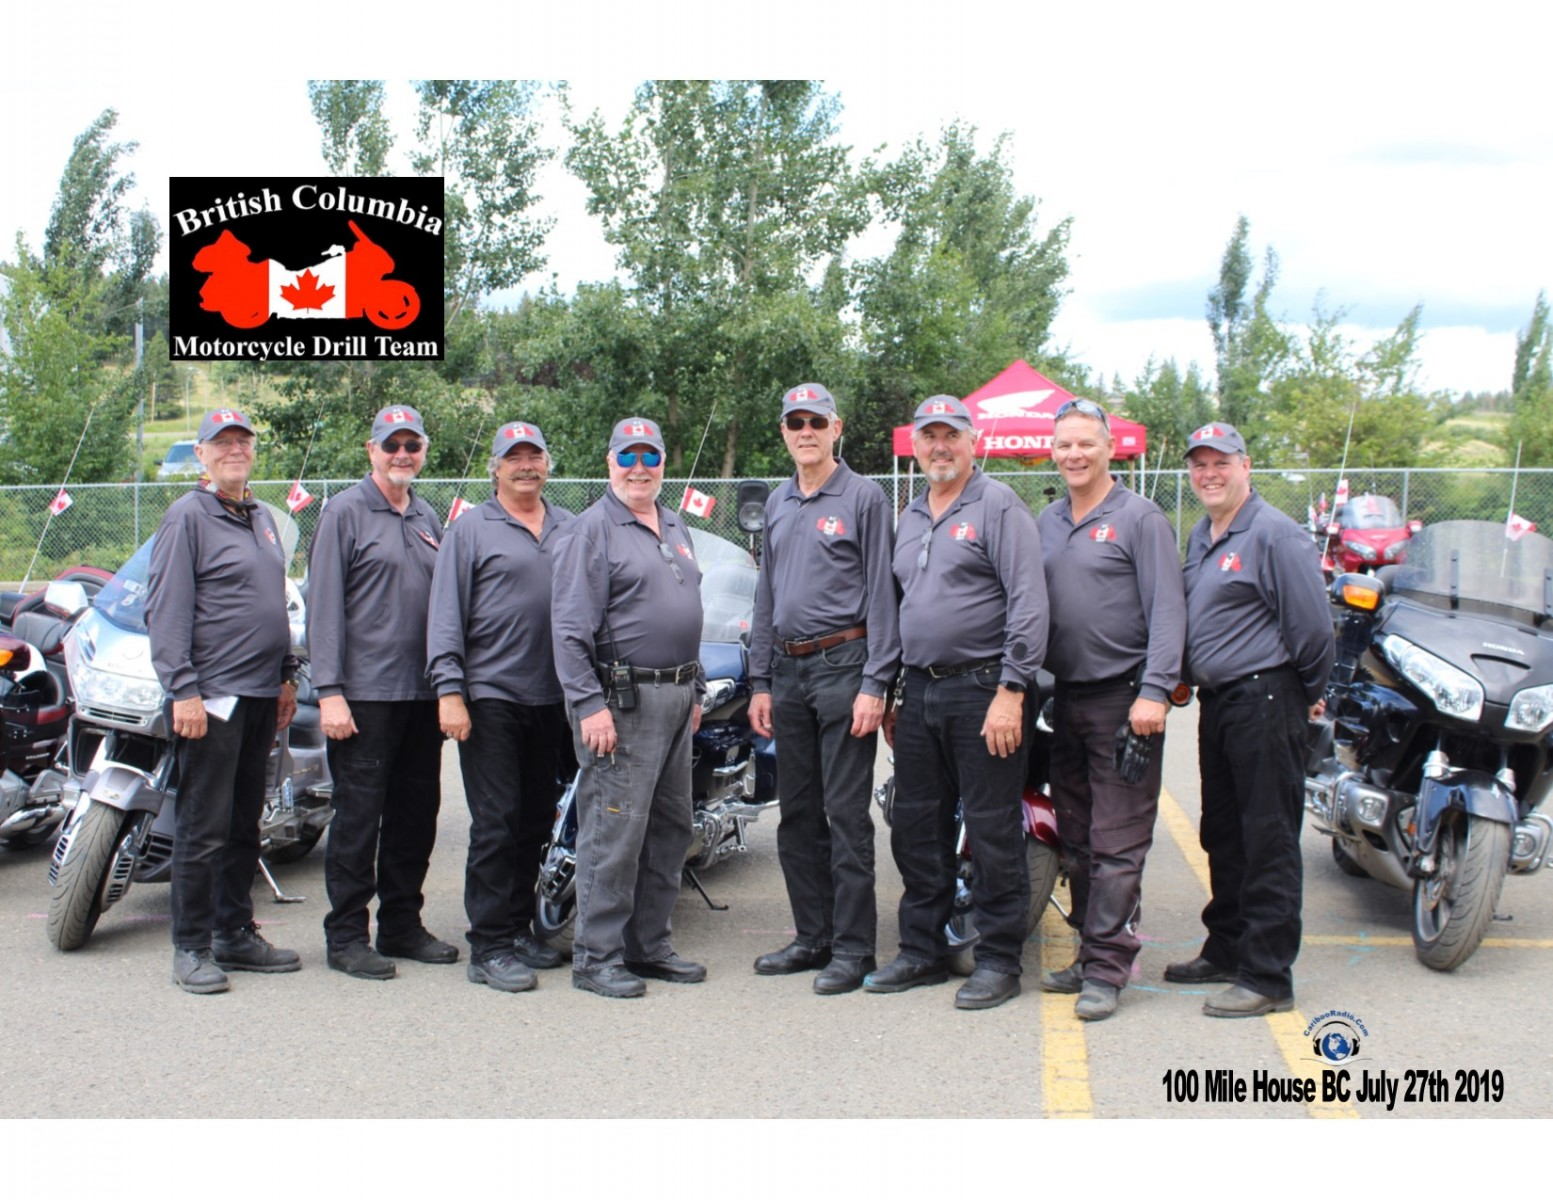 BC-Motorcycle-Drill-Team-100-Mile-House-BC-July-2019